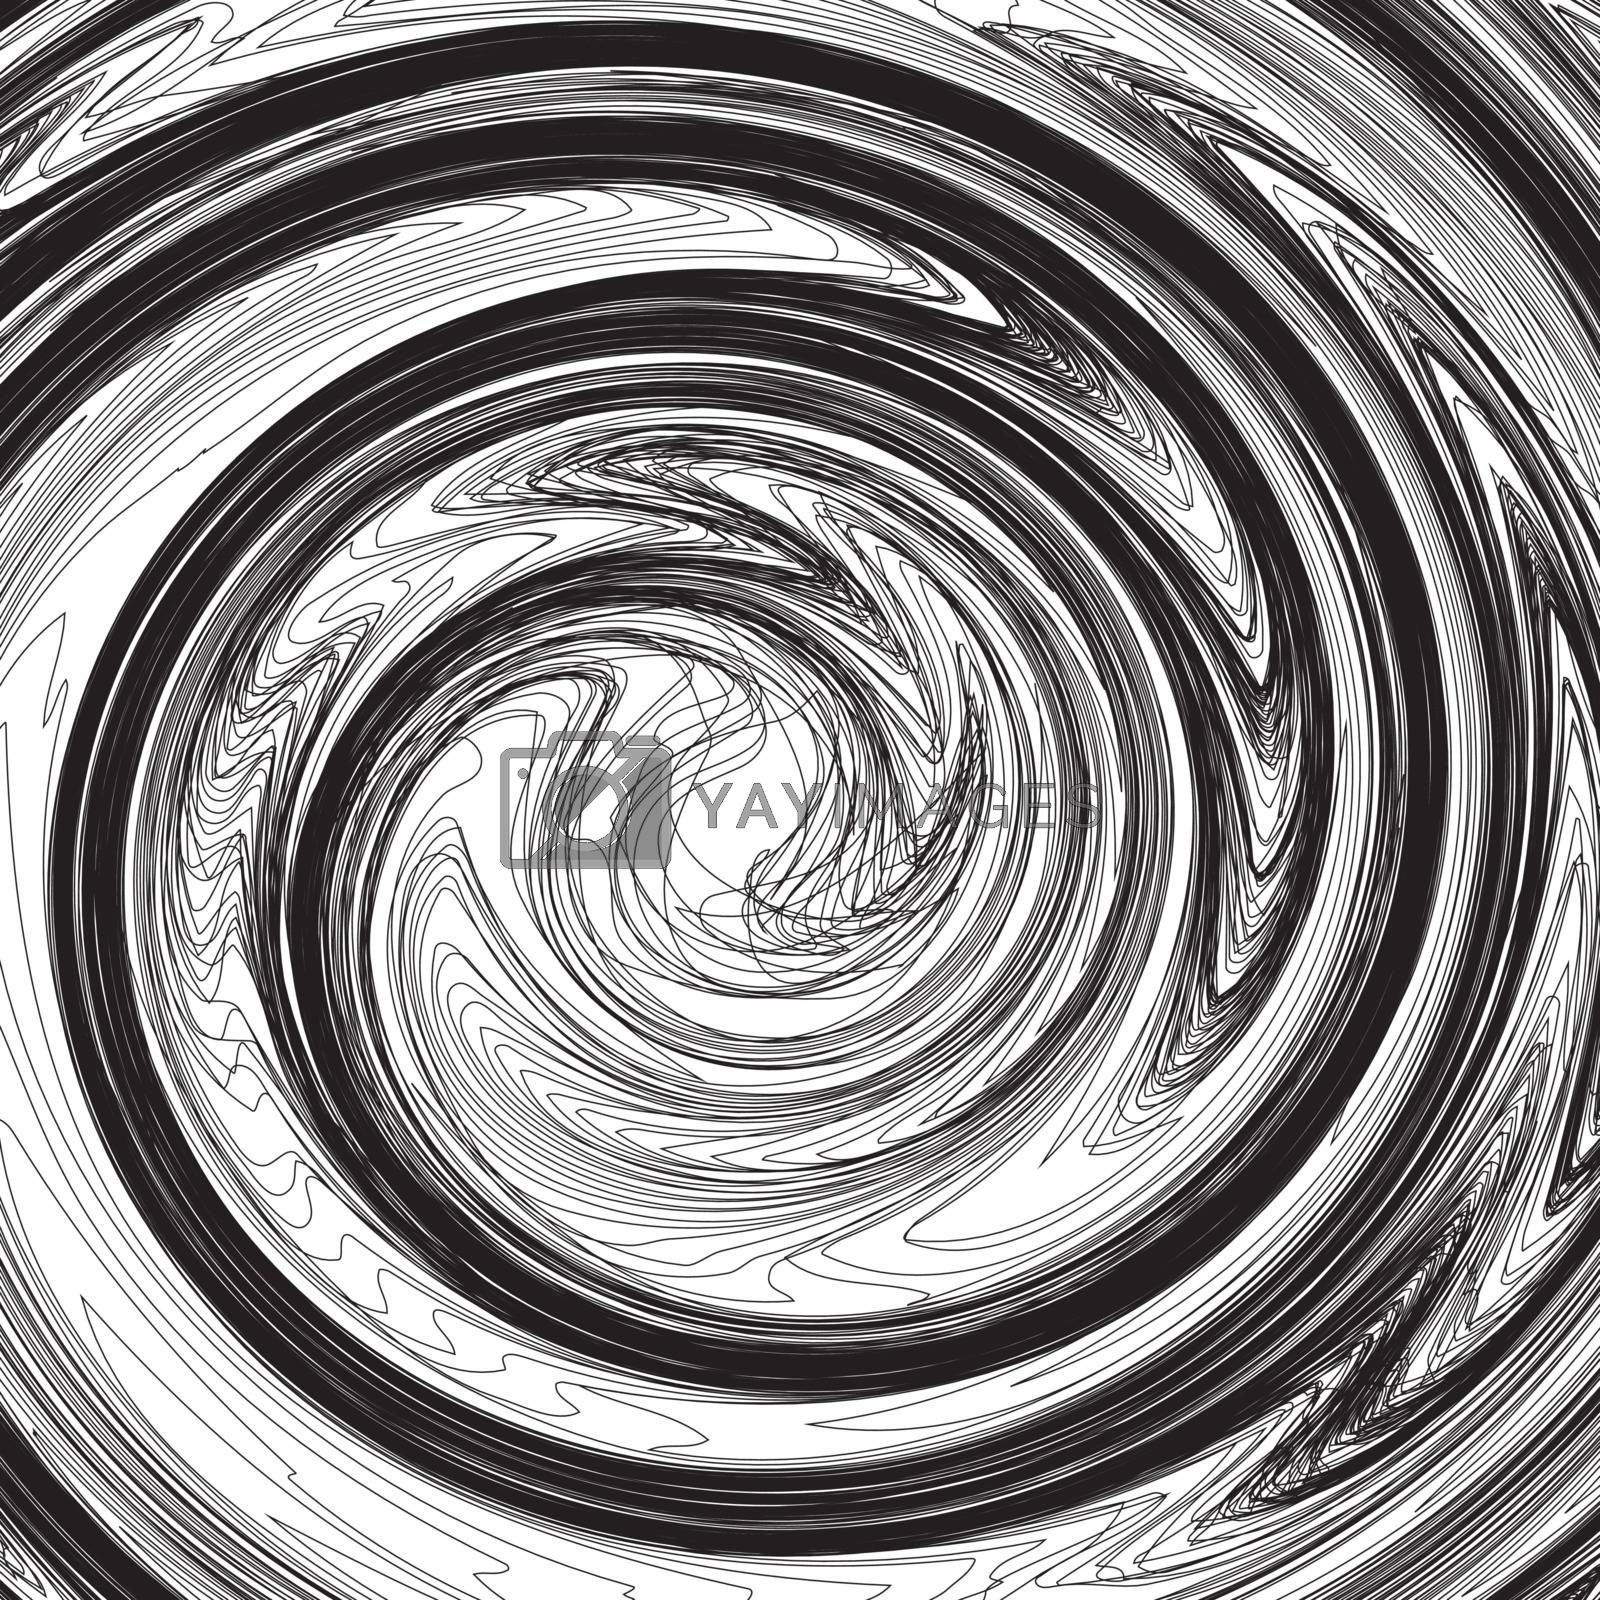 Set of lines twisted into a spiral shape. Vector illustration in black and white style.